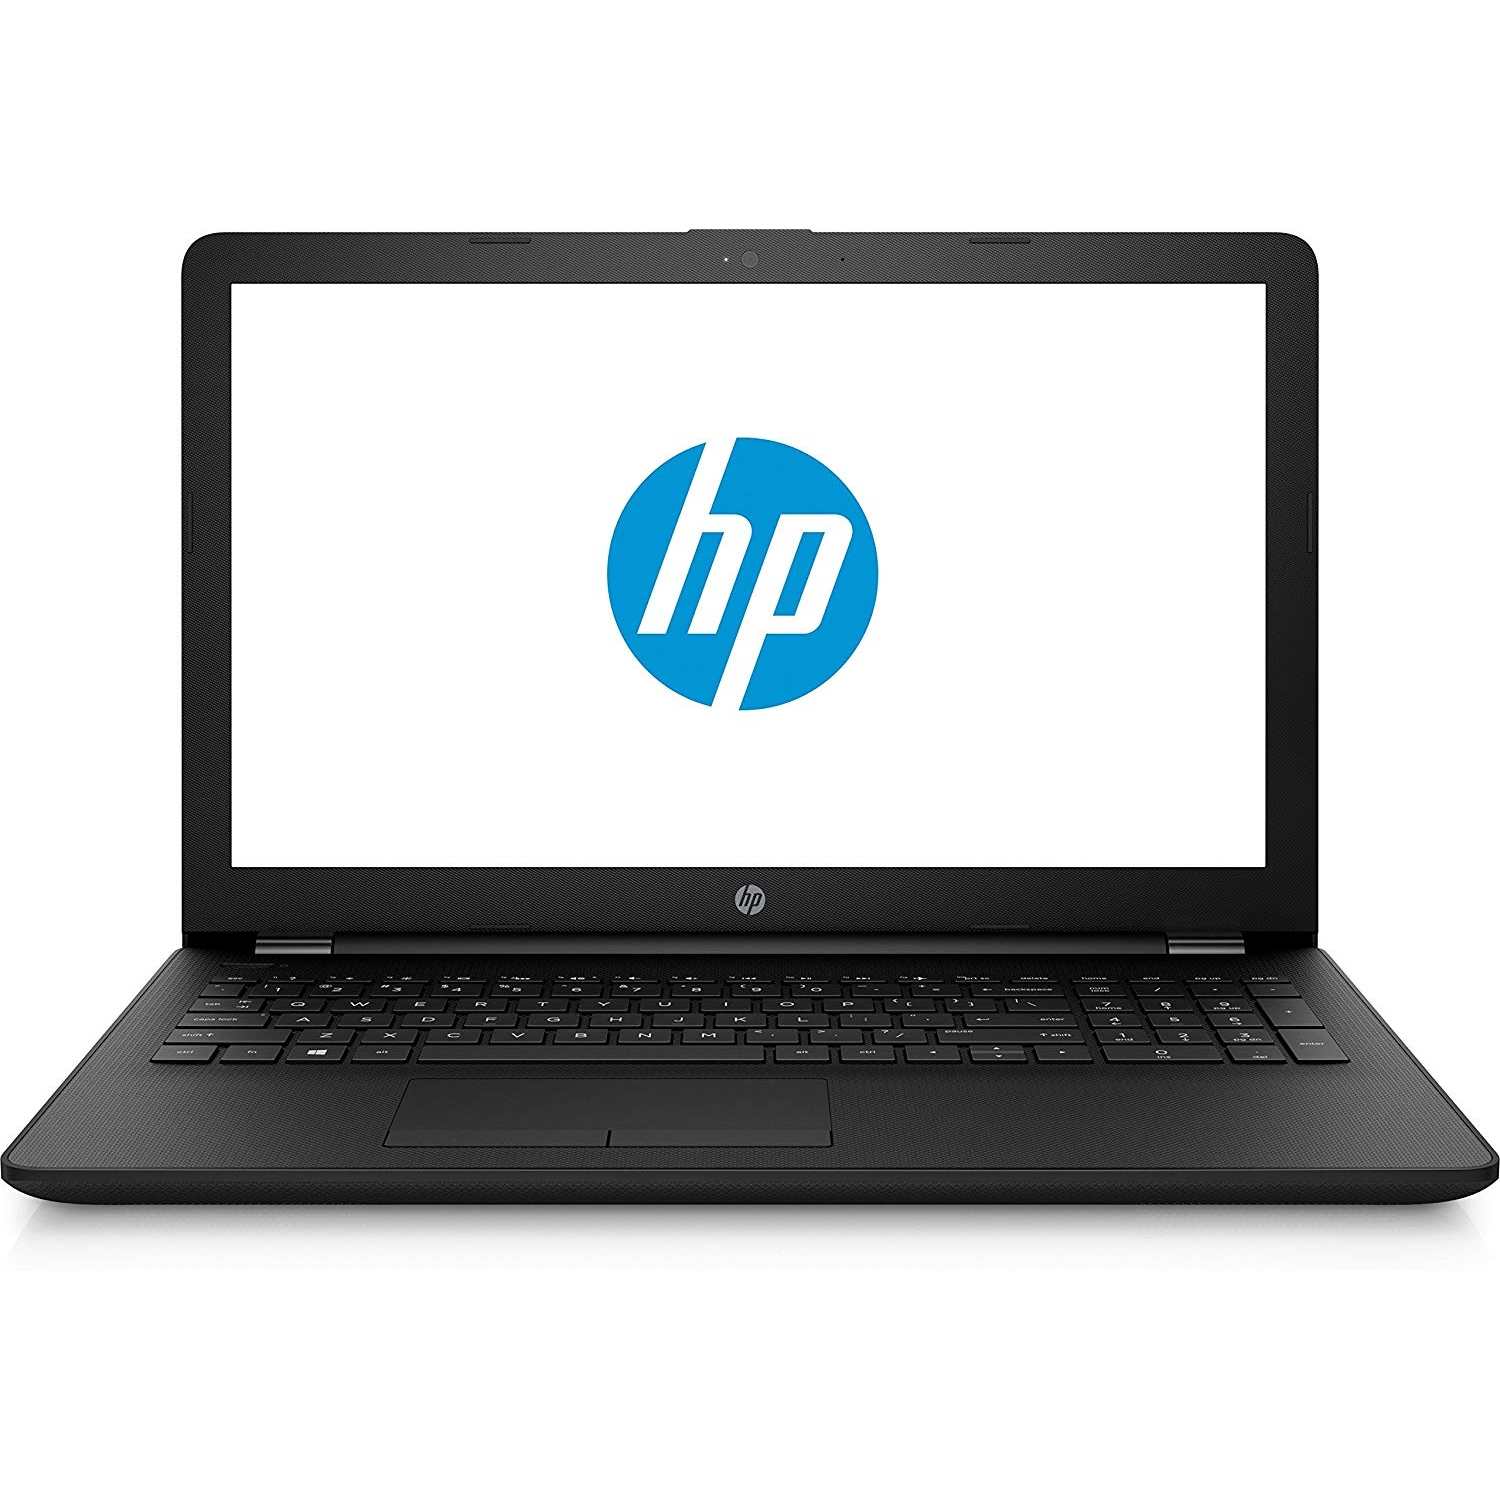 "HP 15-RA012NT 3FY63EA N3060 4GB 500GB O/B VGA 15.6"" FREEDOS NOTEBOOK"